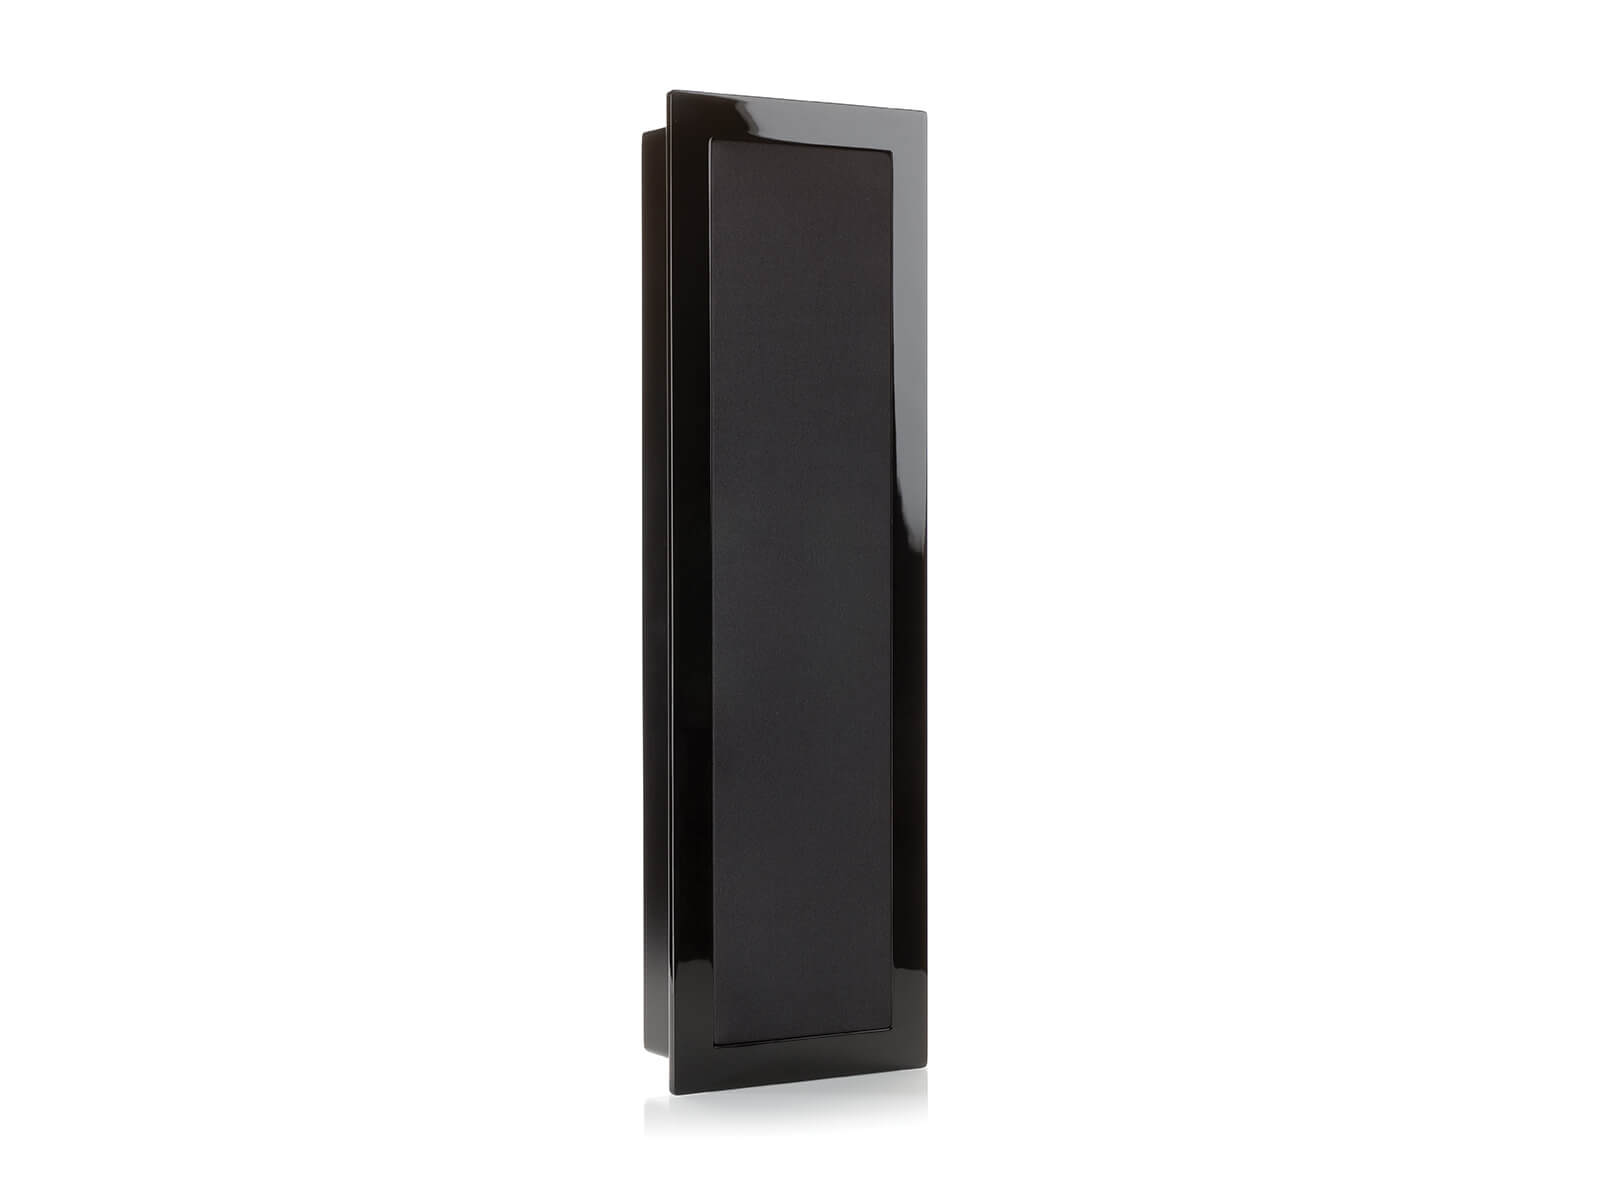 SoundFrame SF2, on-wall speakers, with a high gloss black lacquer finish.